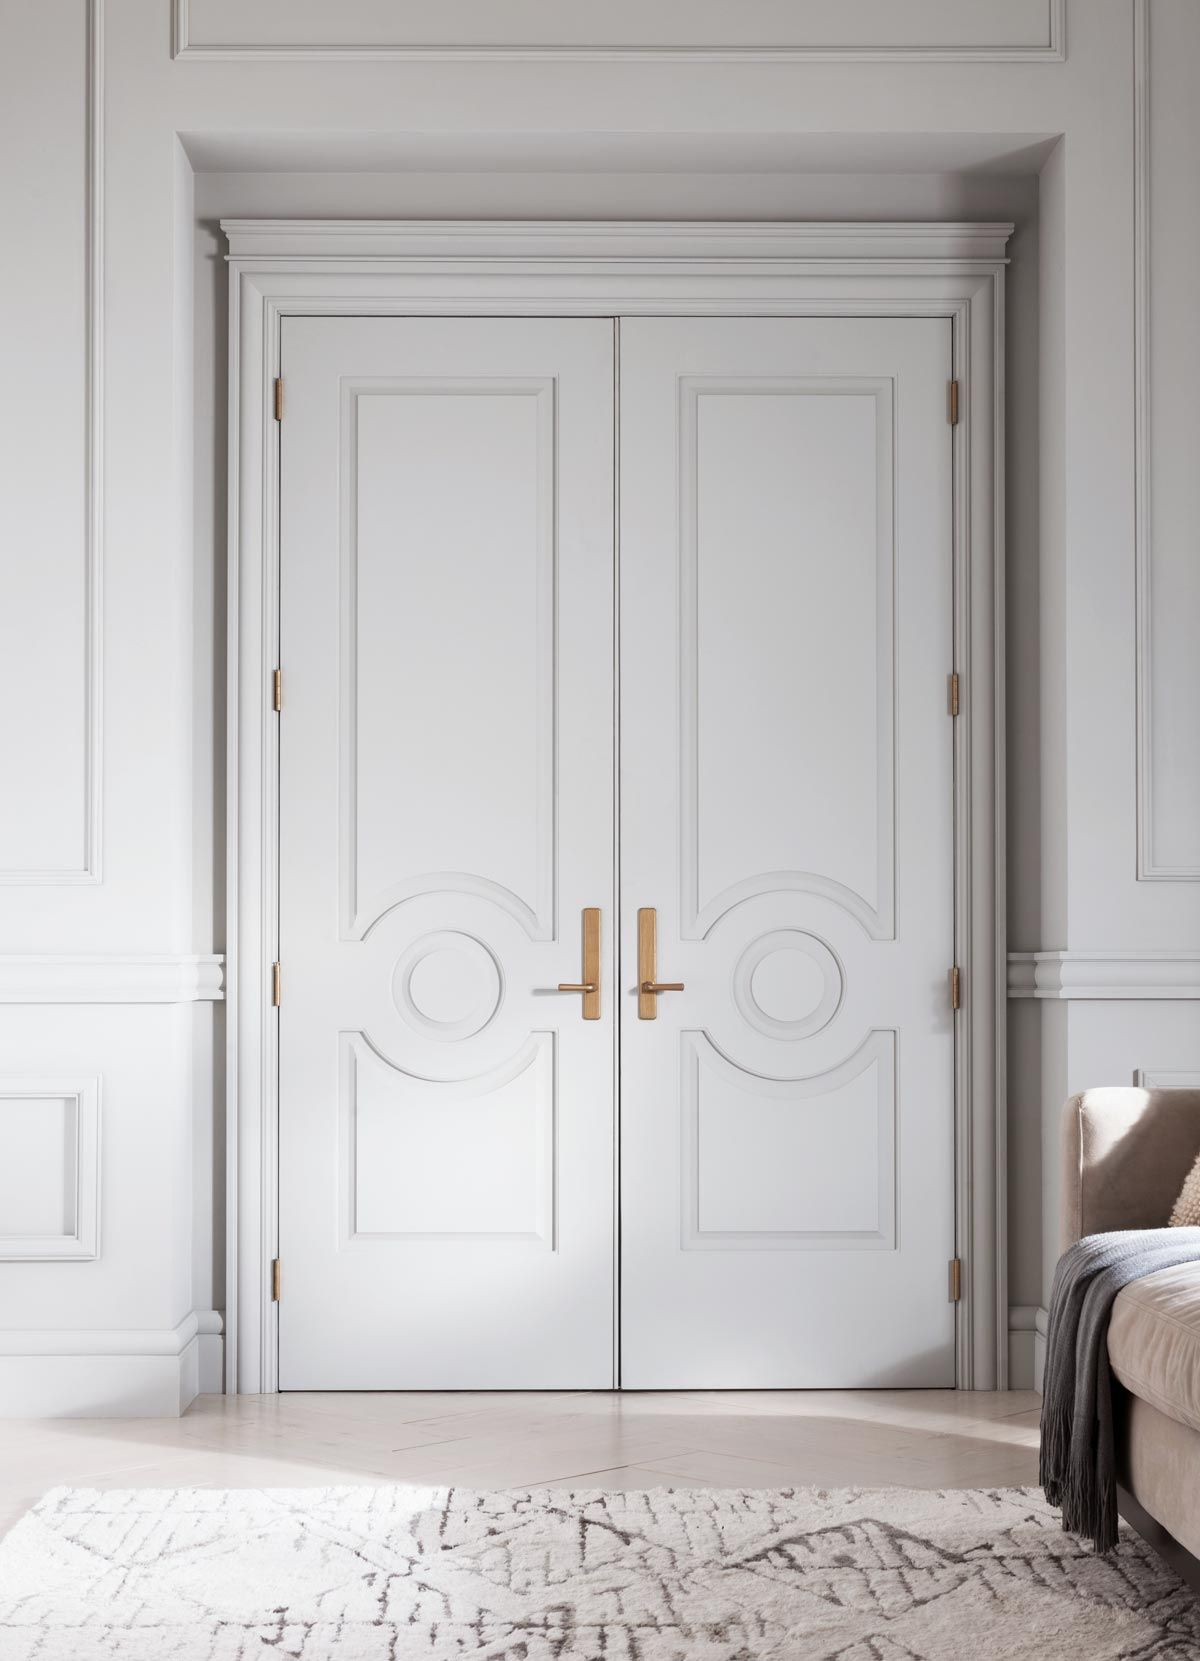 50 Contemporary Modern Interior Door Designs For Most: Elevated Style With Moulding & Trim